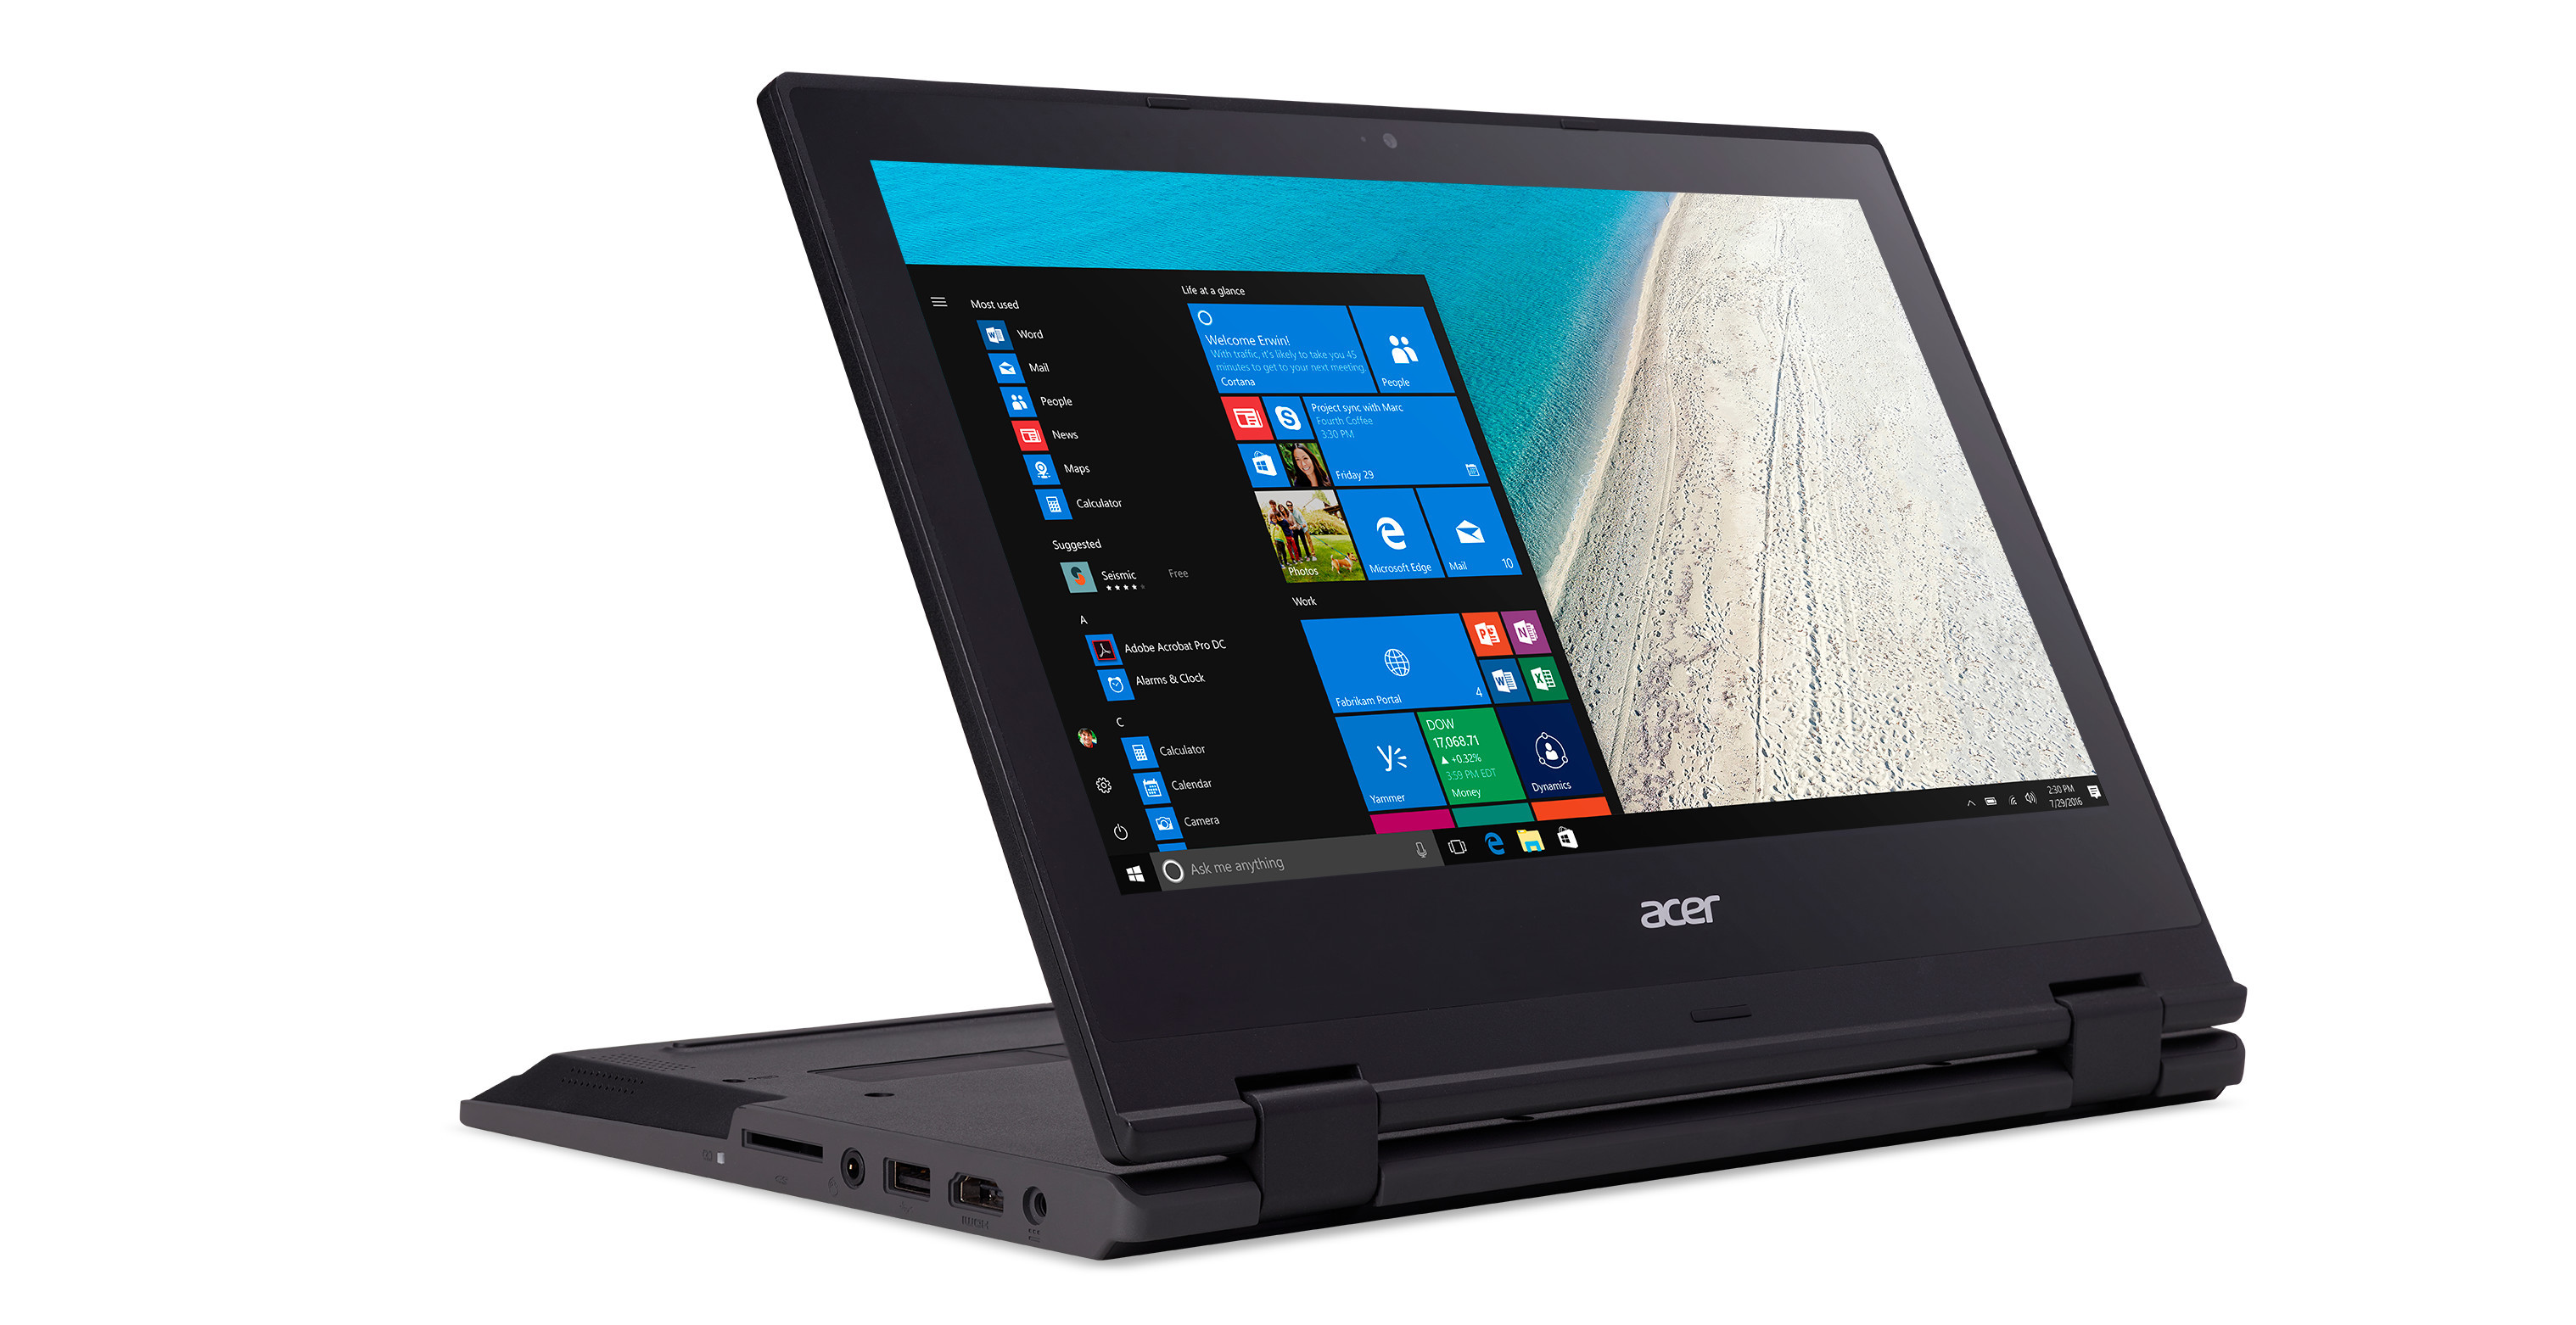 JP.IK introduces a new Windows 10 laptop for emerging markets